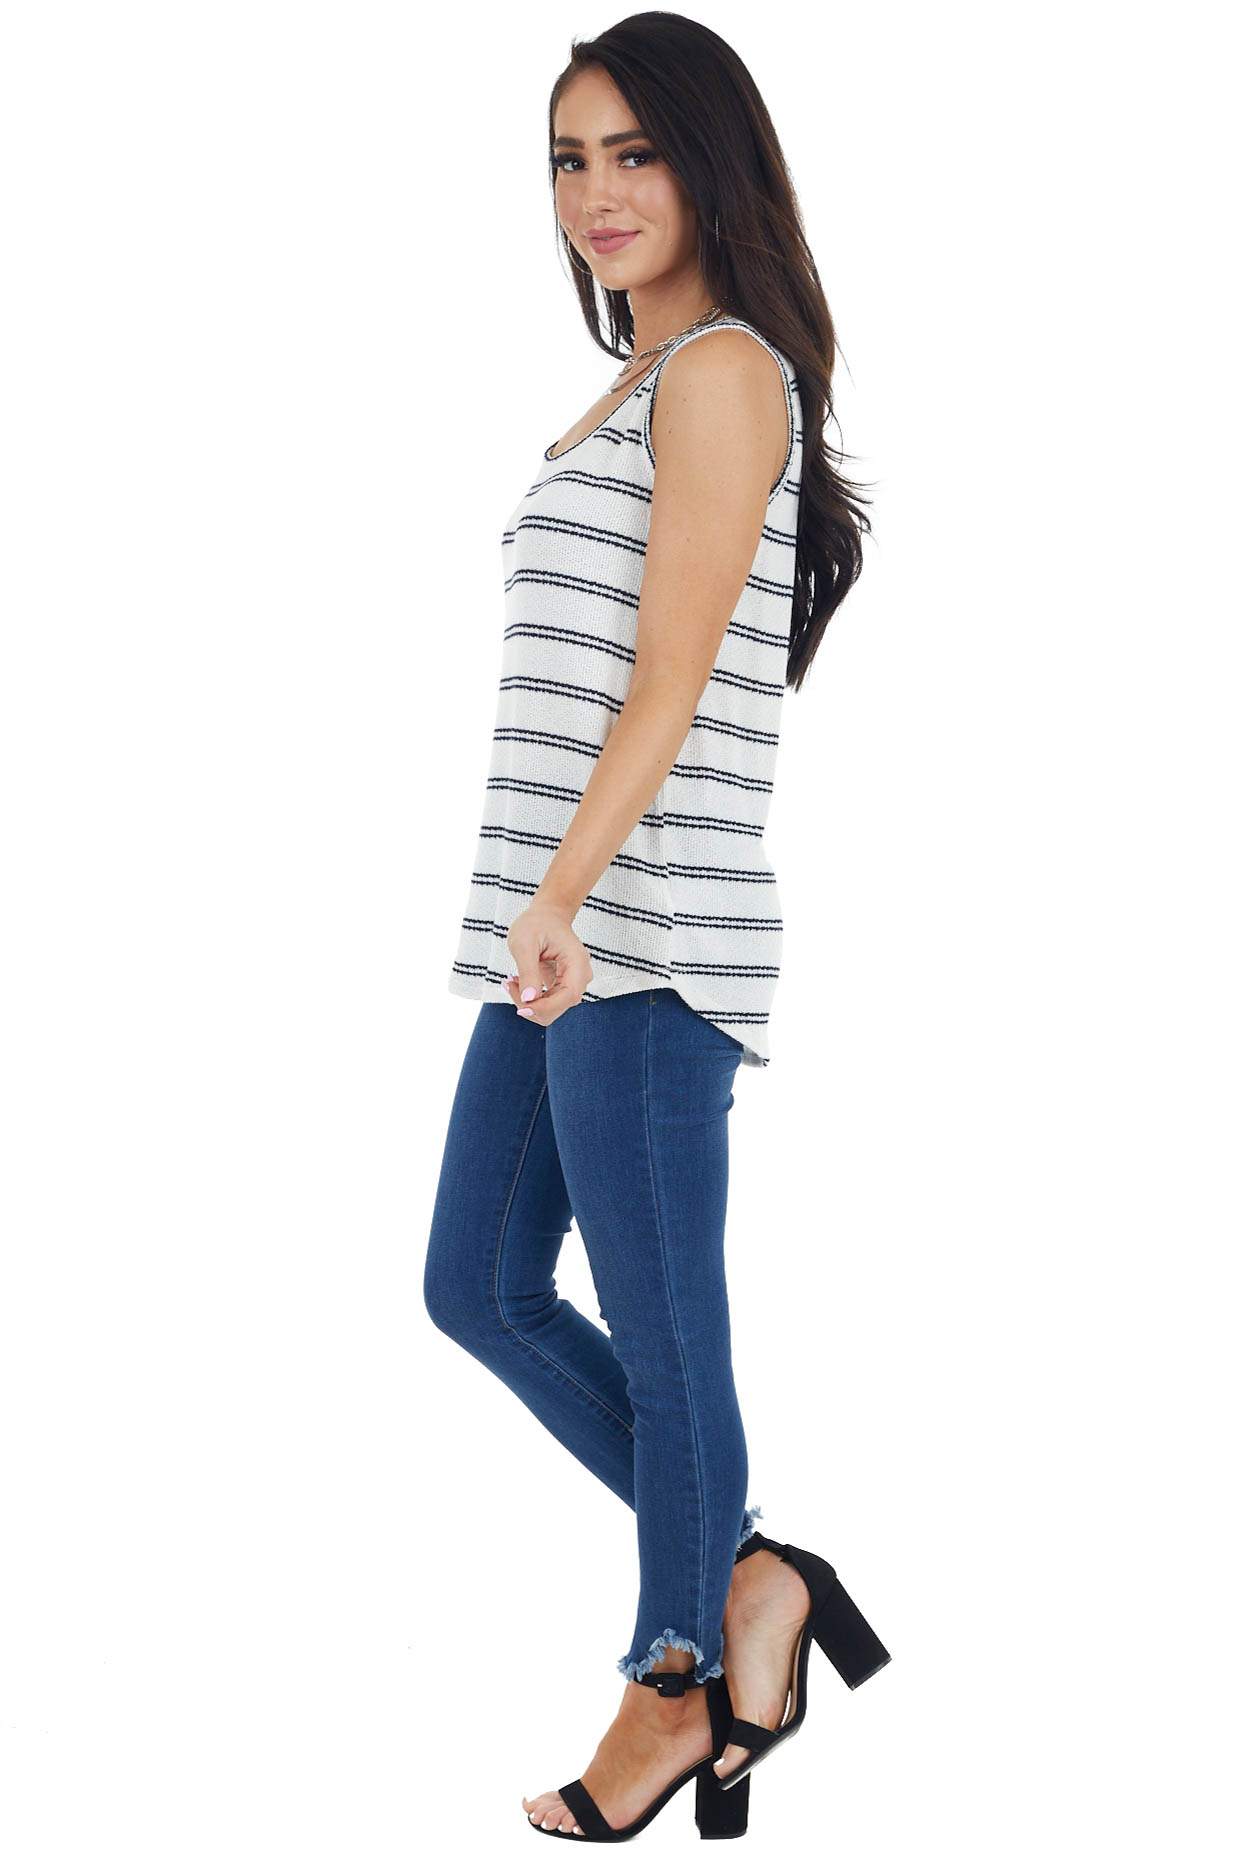 Ivory and Navy Striped Sleeveless Top with Round Necklinev